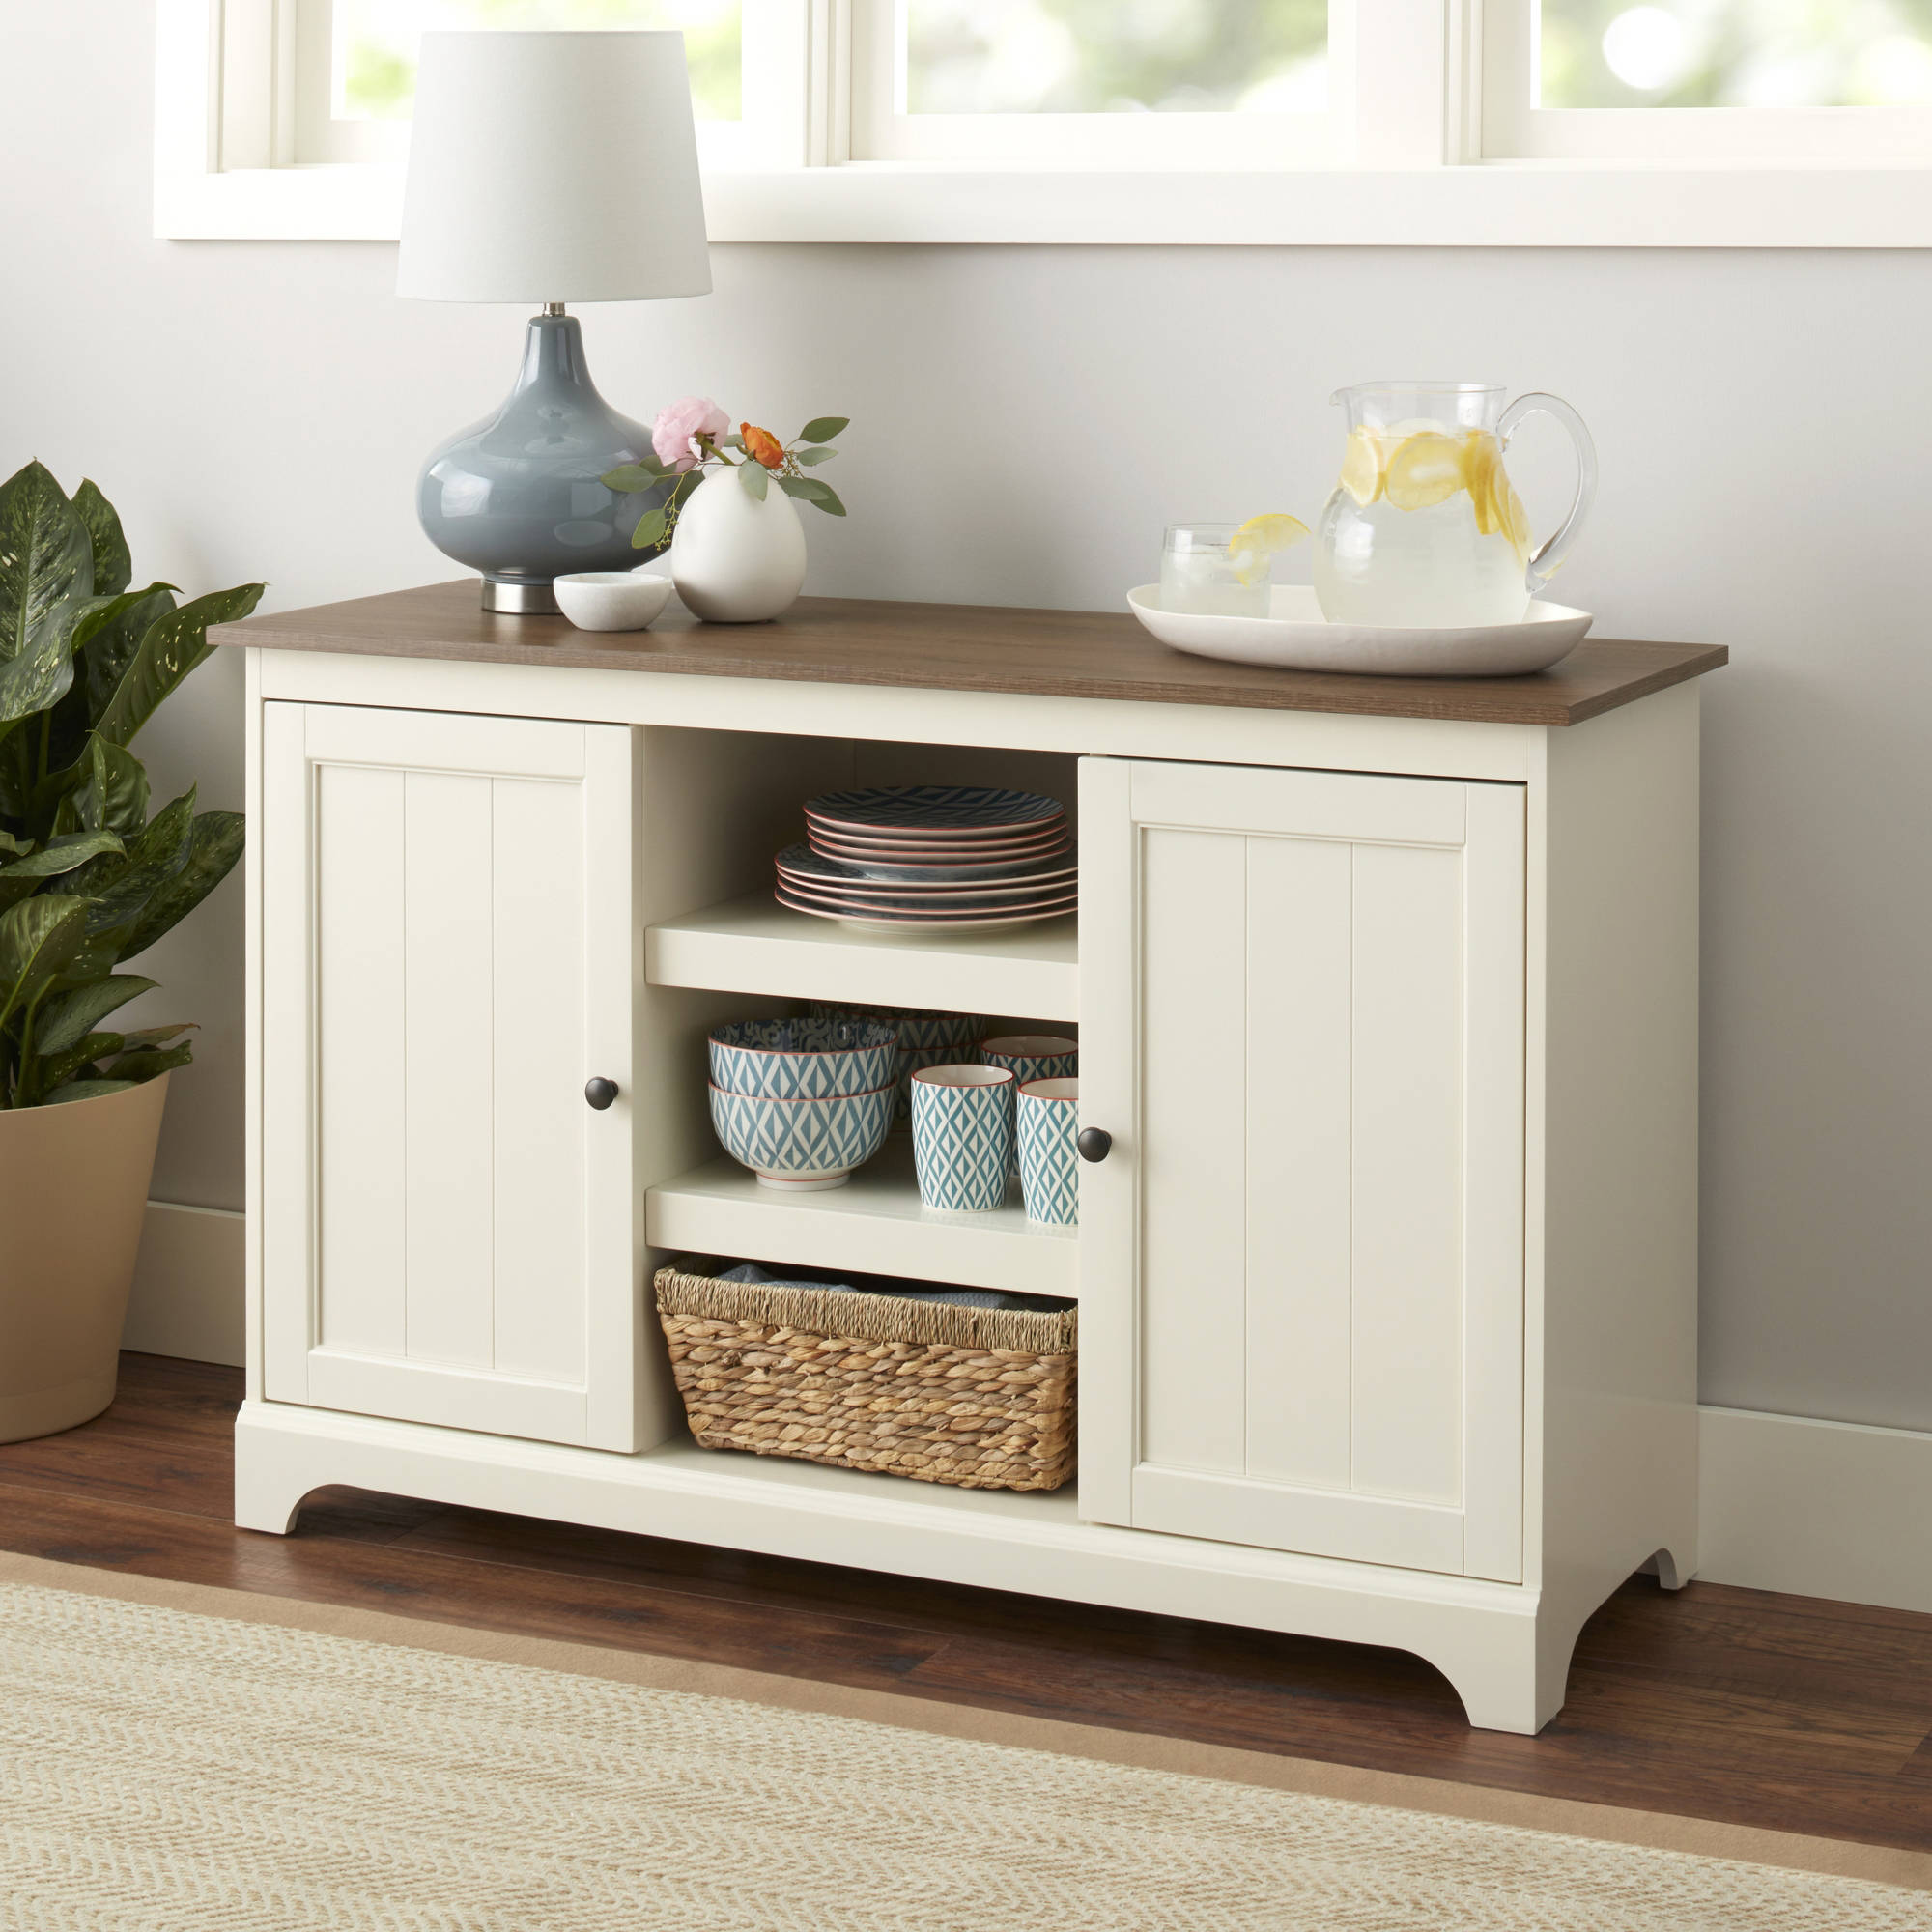 Better Homes & Gardens Kipling Credenza